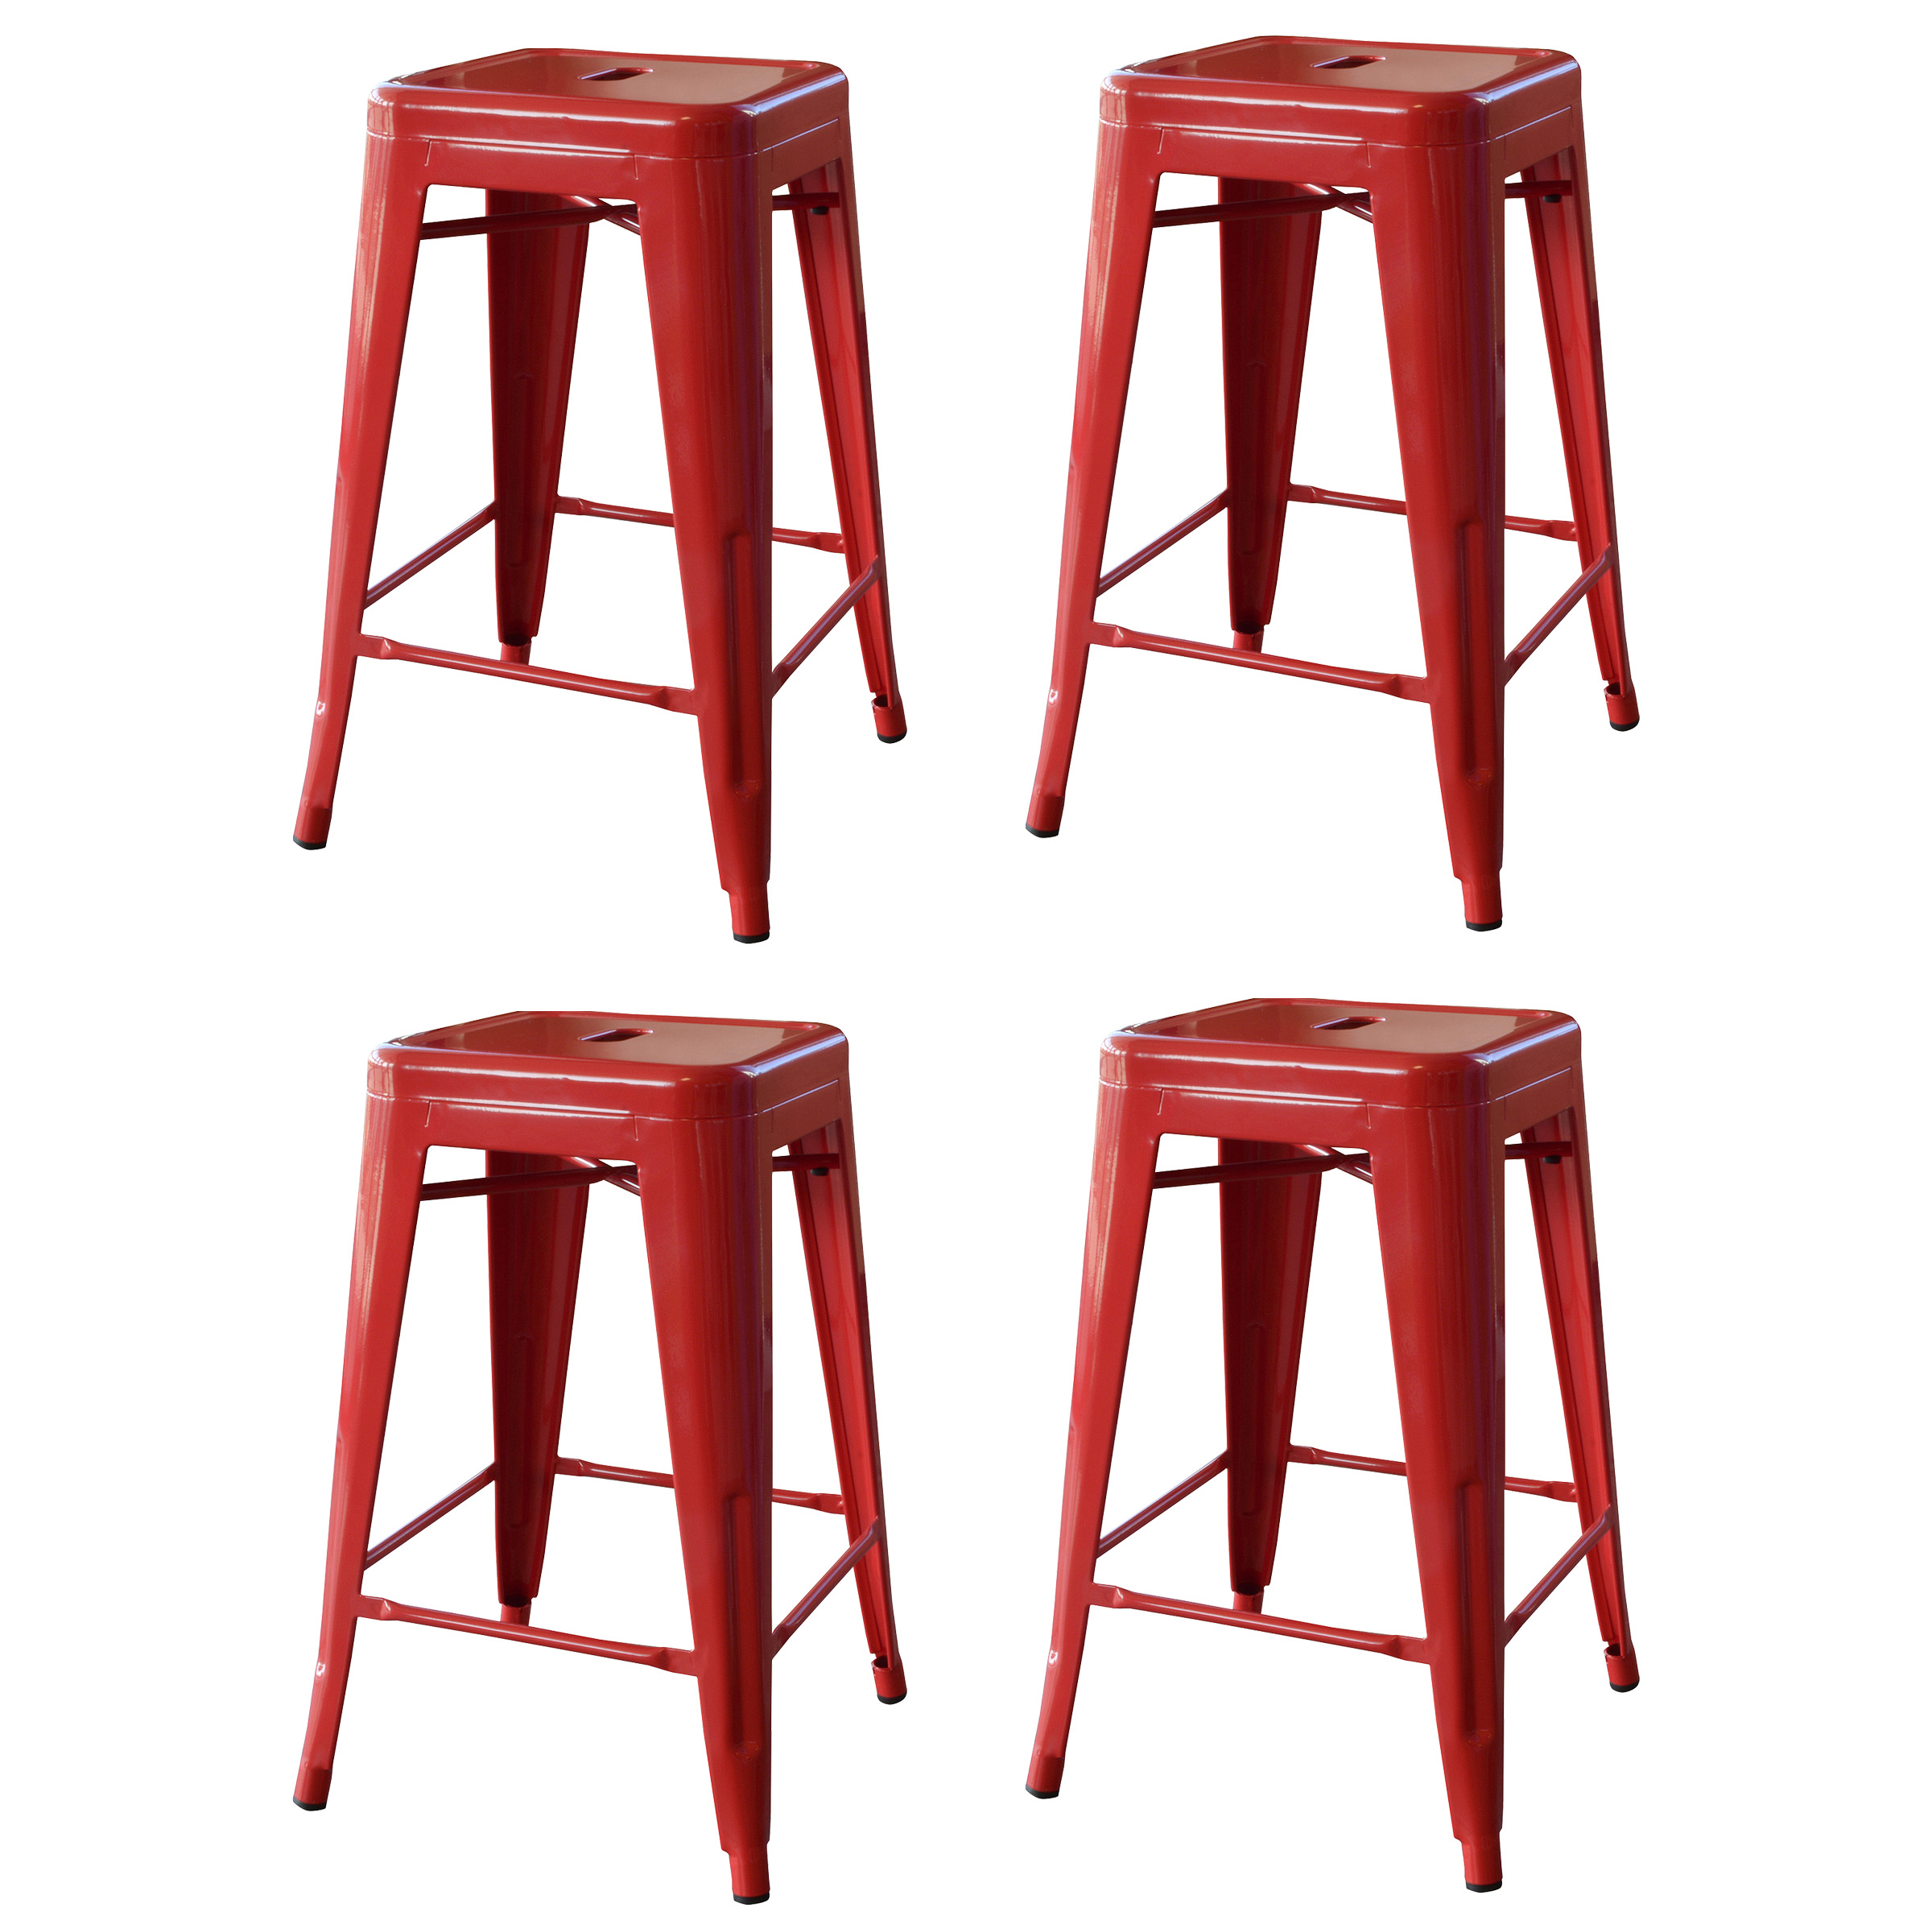 Amerihome Loft 24 Metal Bar Stool Red Set Of 4 Walmartcom